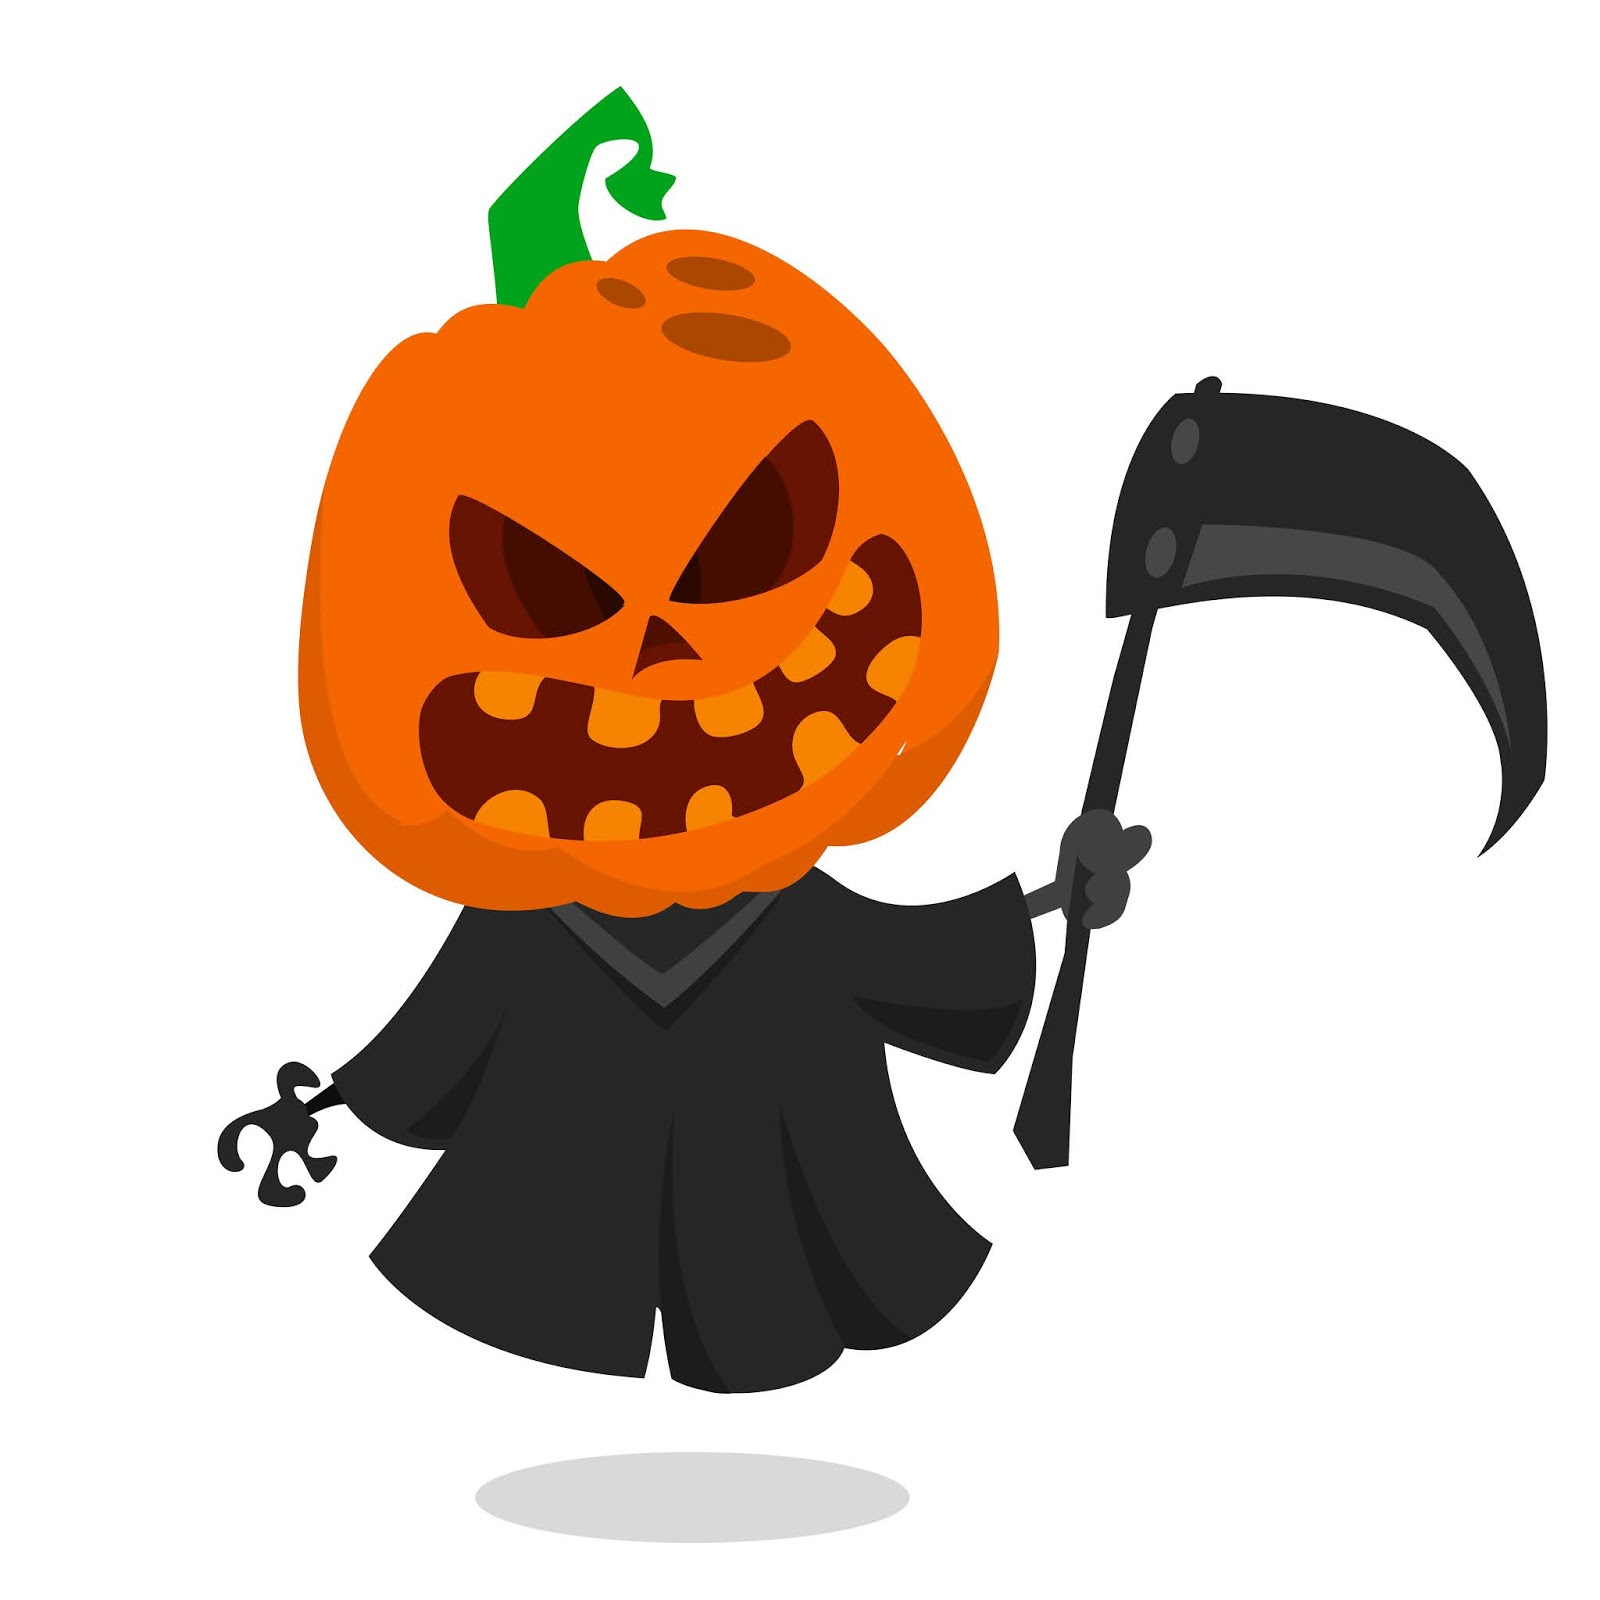 Cartoon Halloween Pumpkin Head Free Download Vector CDR, AI, EPS and PNG Formats